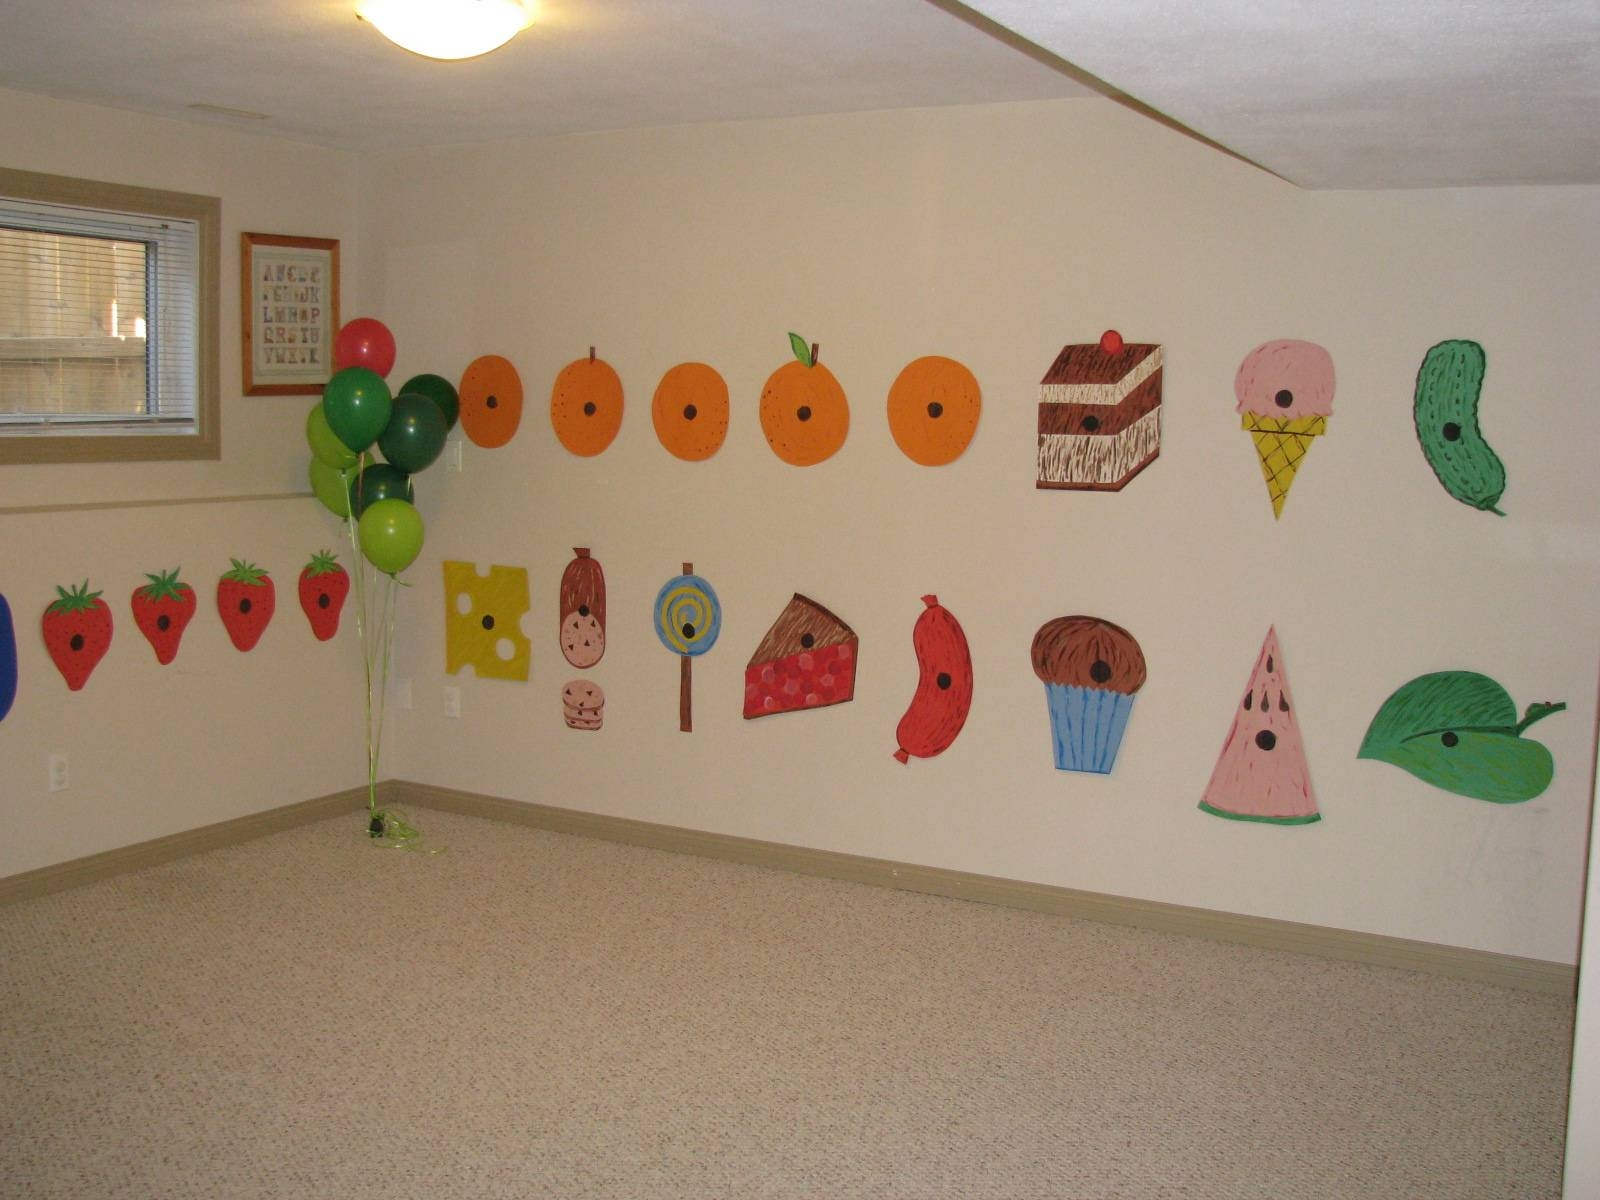 Making Merry Memories: The Very Hungry Caterpillar Party Intended For Most Recently Released The Very Hungry Caterpillar Wall Art (View 6 of 25)